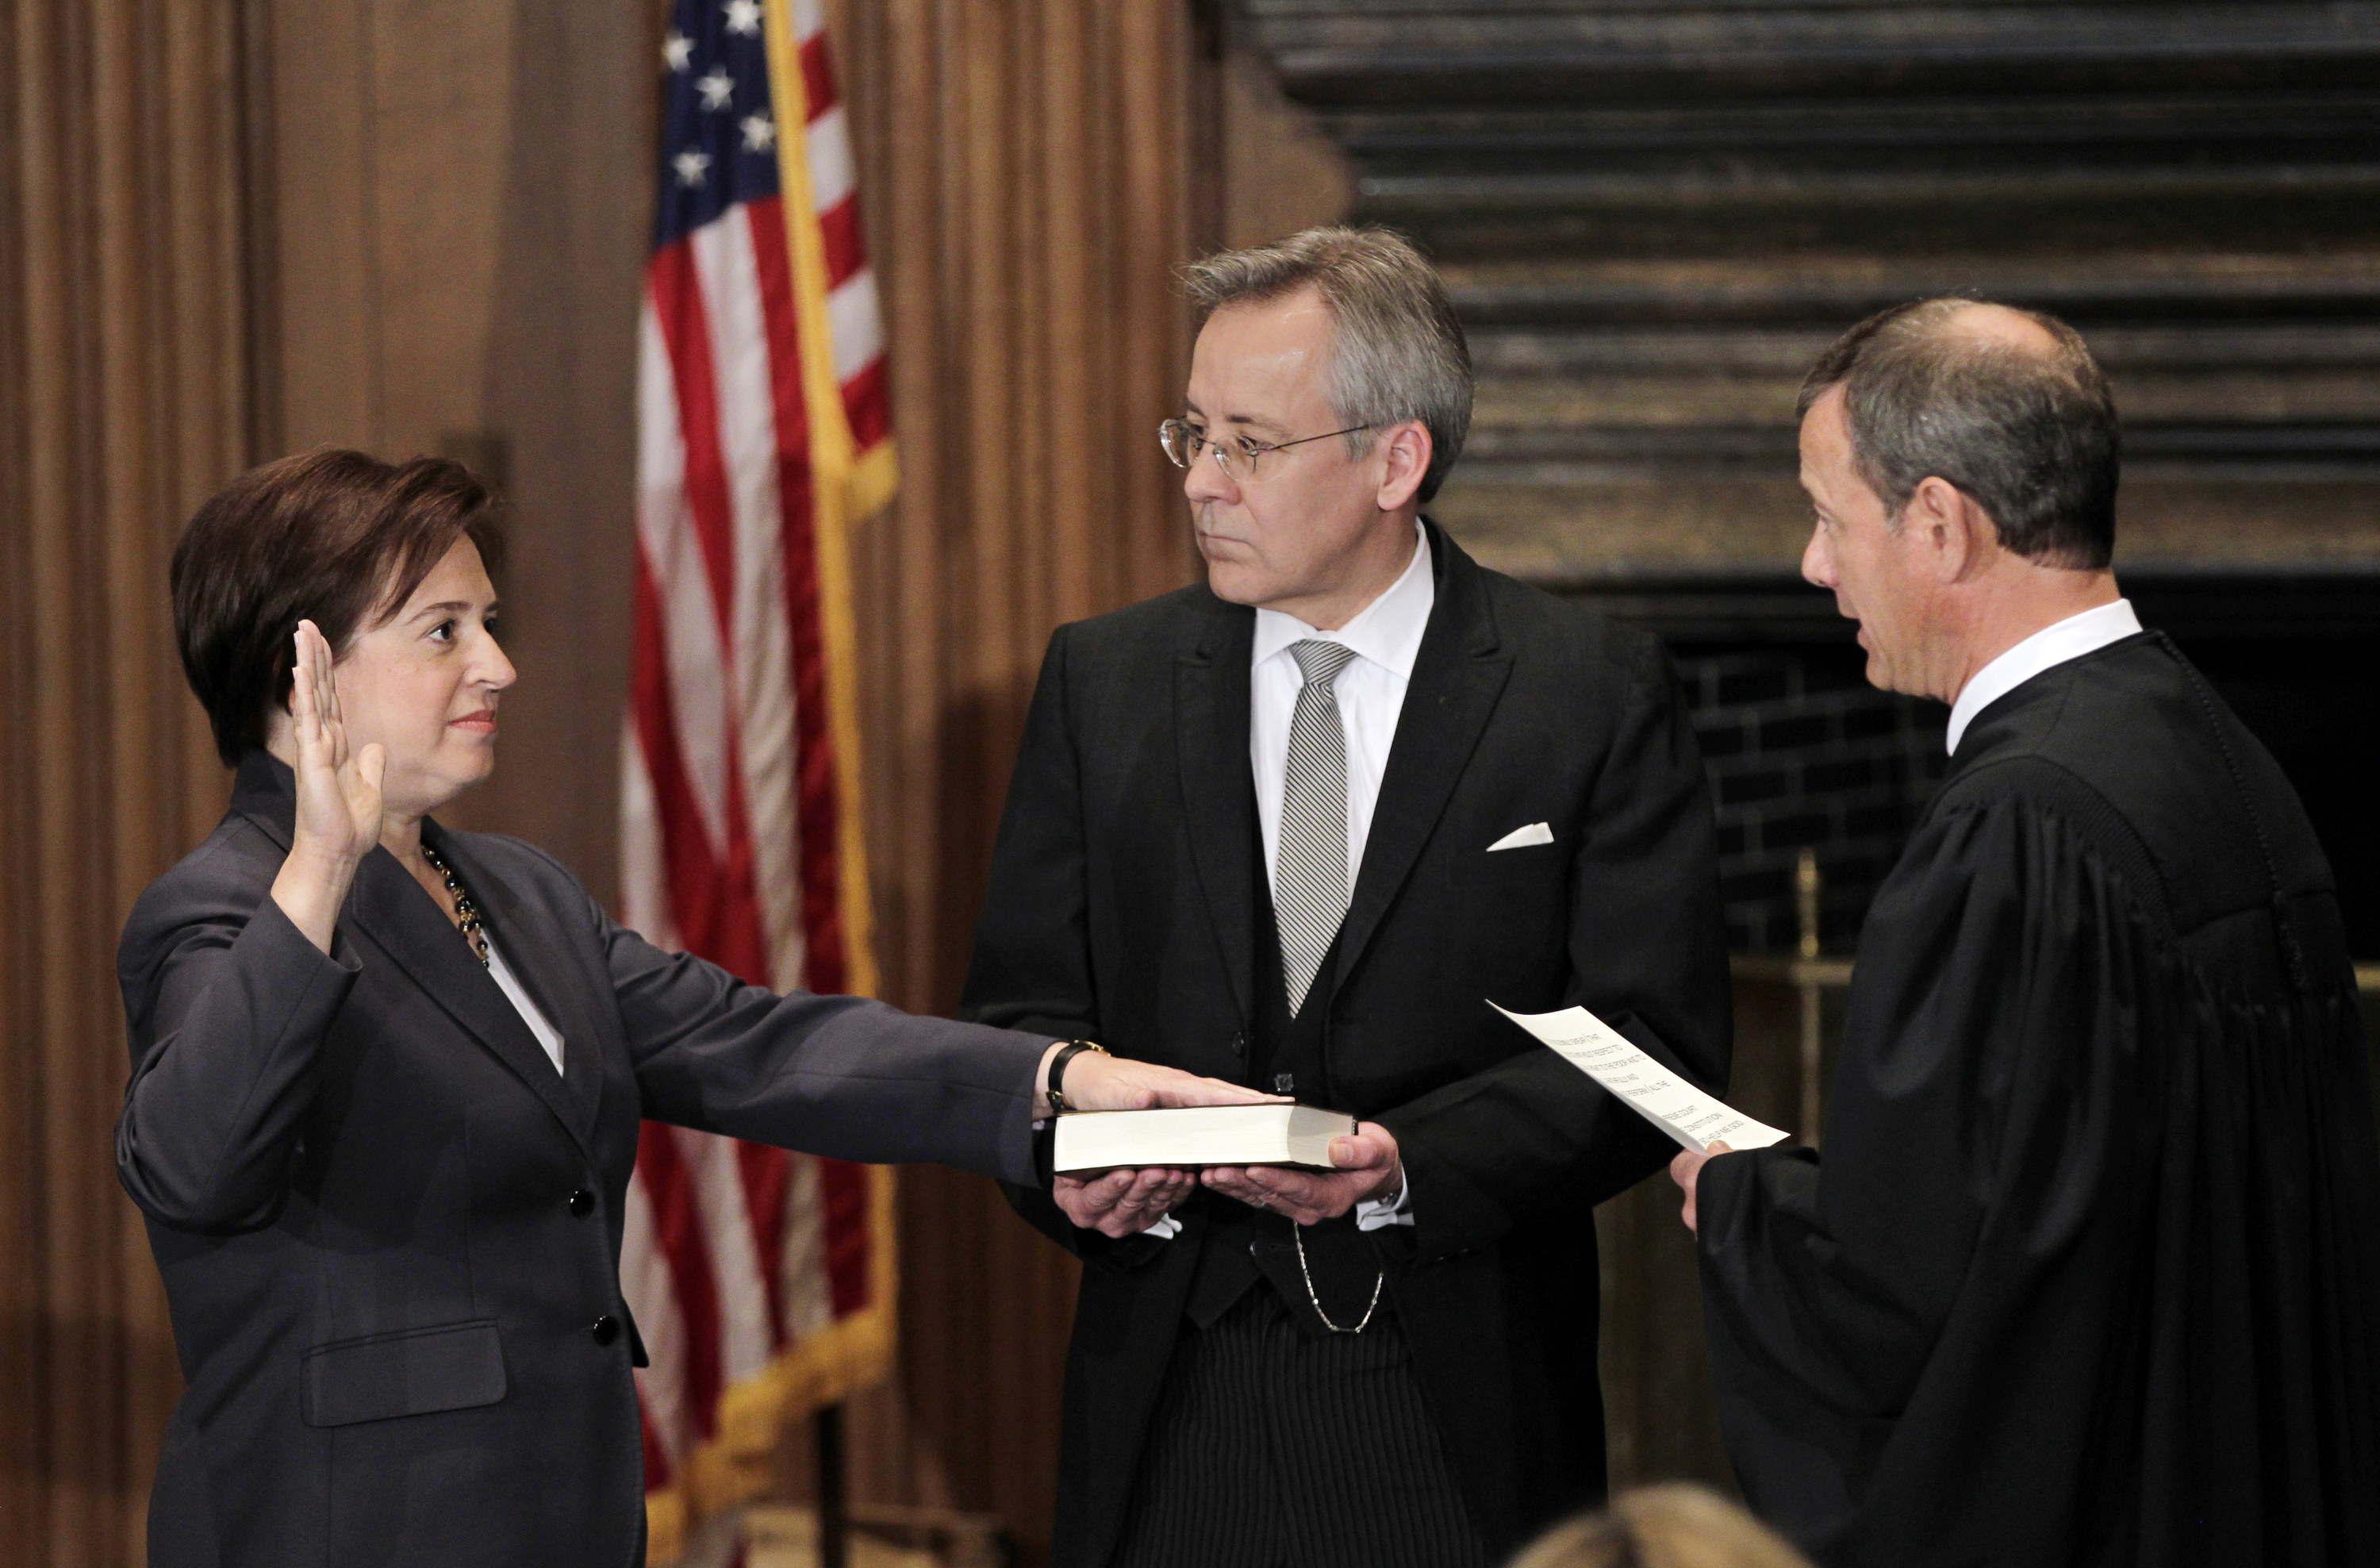 Elena Kagan being sworn in as Chief Justice John Roberts administers the judicial oath, and Jeffrey Minear, counselor to the chief justice, holds the Bible Elena has her hand on.